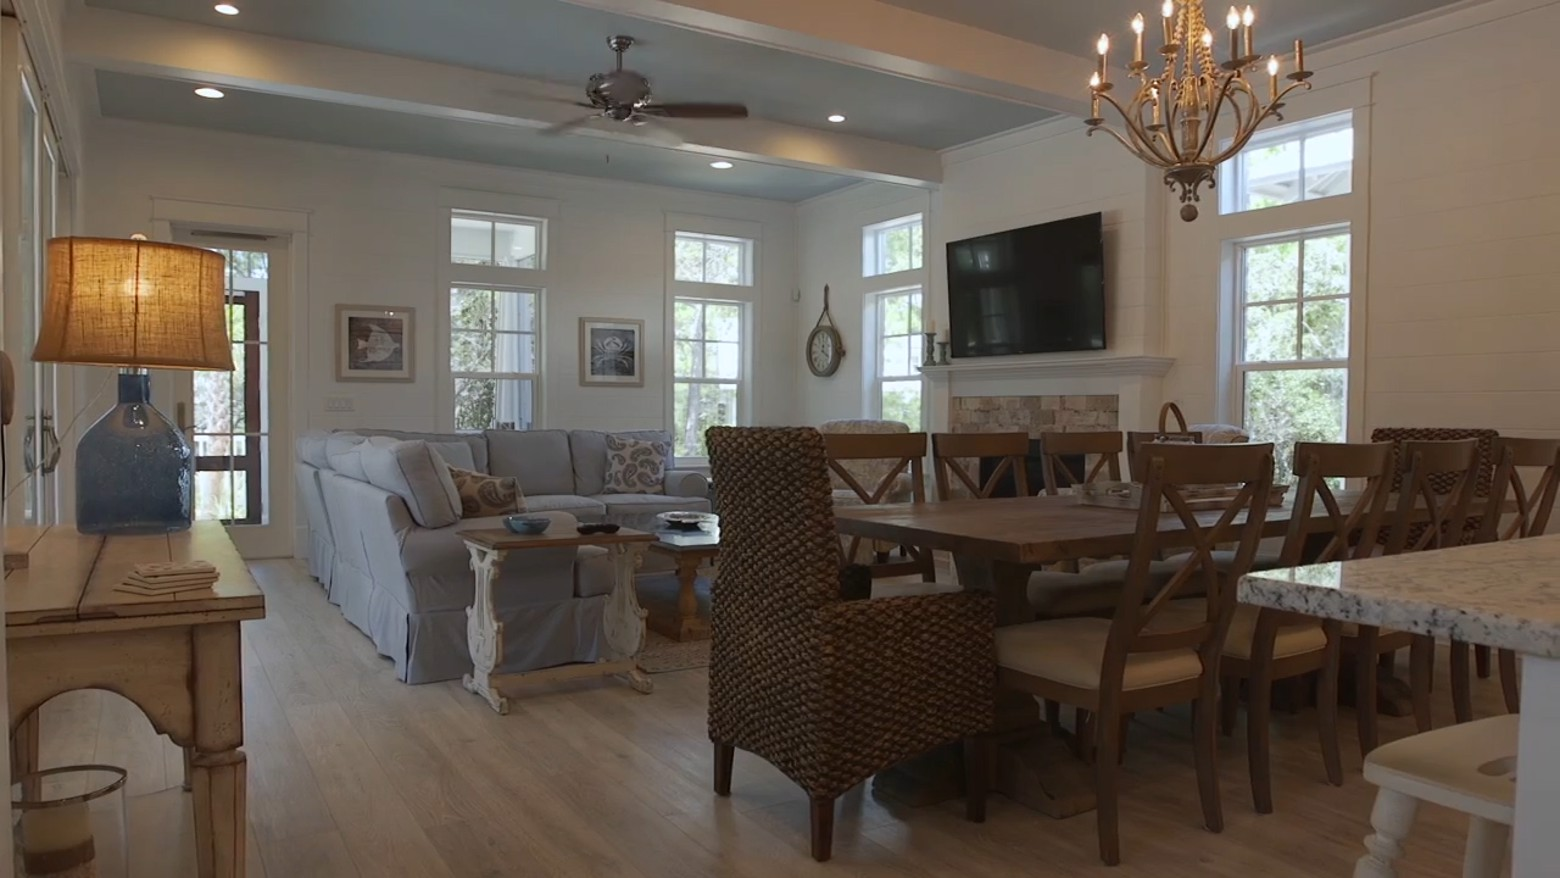 Southern-Sands-Seagrove-Beach-Vacation-Home.00_00_49_11.Still004.jpg image